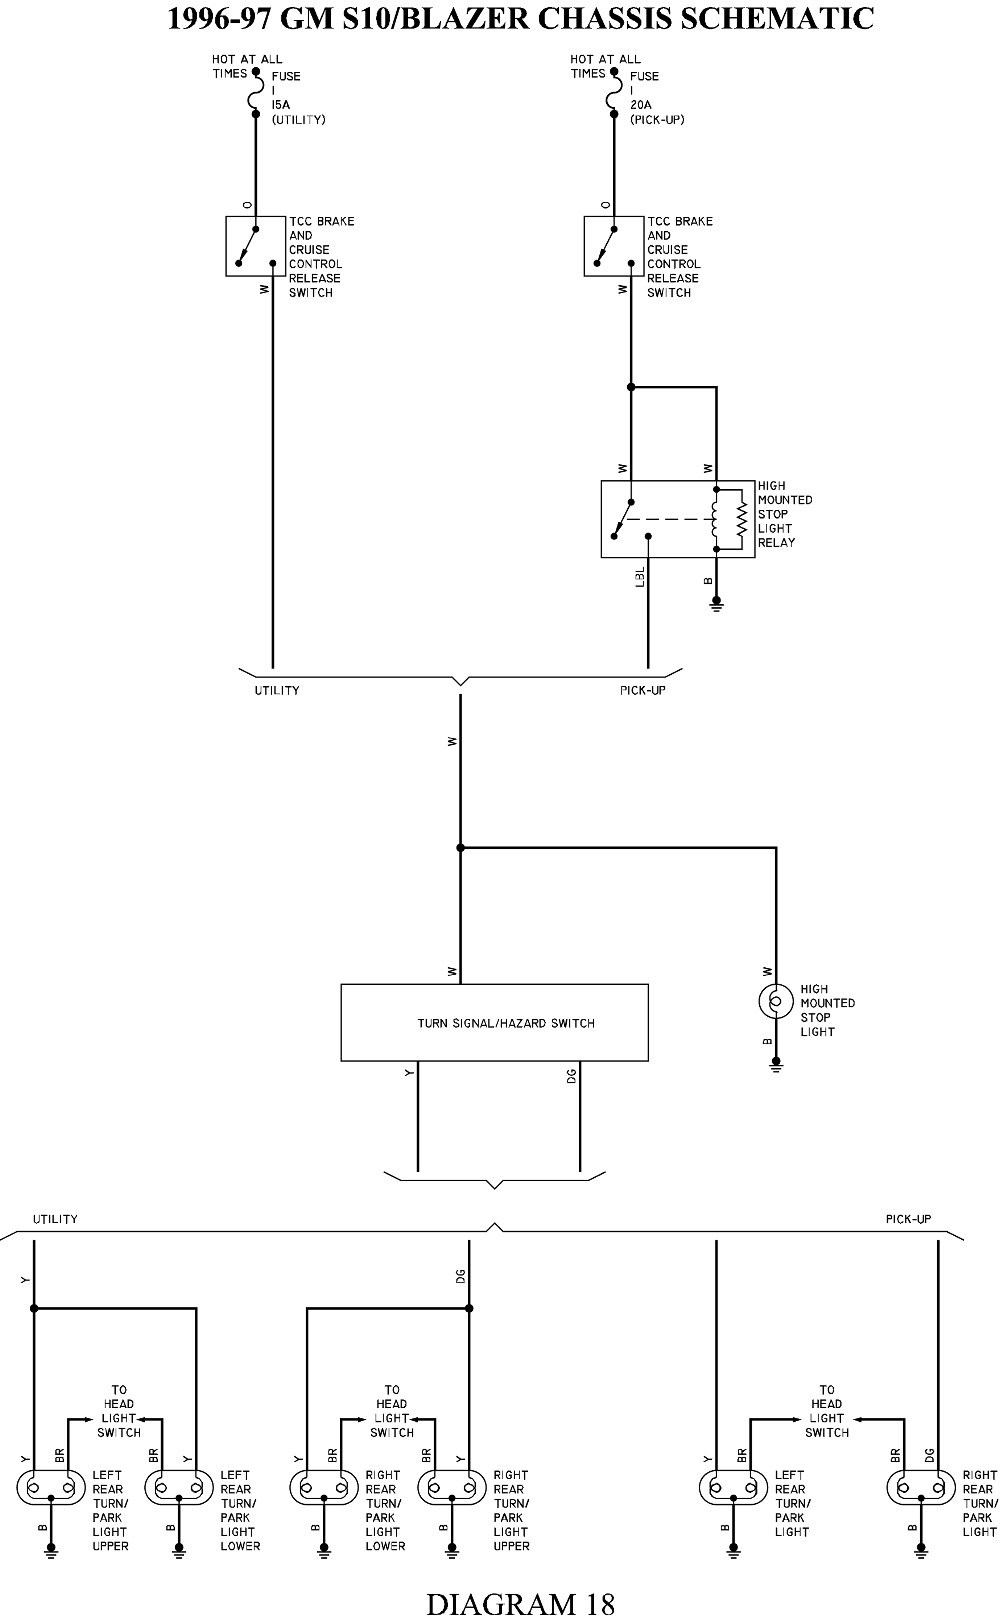 96 Chevy S10 Wiring Diagram - Wiring Diagram Recent store-looting -  store-looting.cosavedereanapoli.it | Wiring Locations 1996 Chevy S 10 Pick Up |  | store-looting.cosavedereanapoli.it